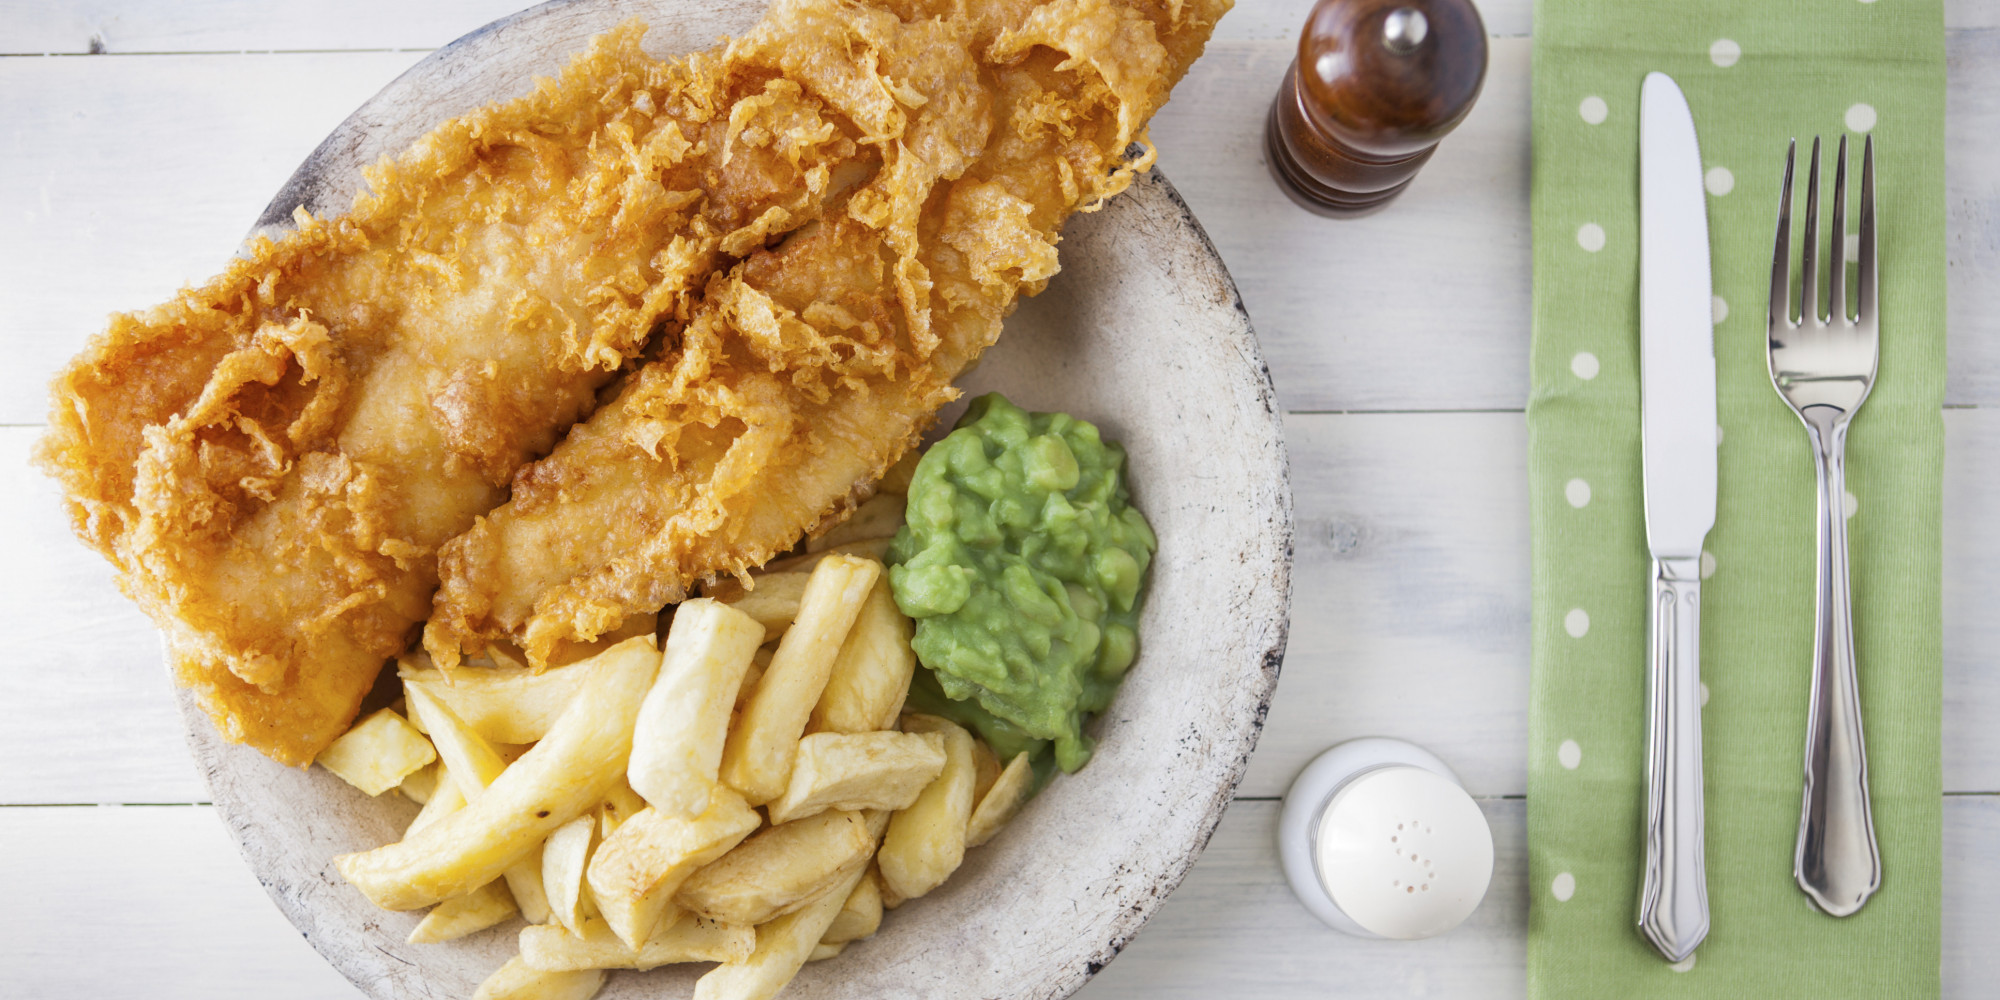 london 39 s best fish and chips huffpost uk. Black Bedroom Furniture Sets. Home Design Ideas